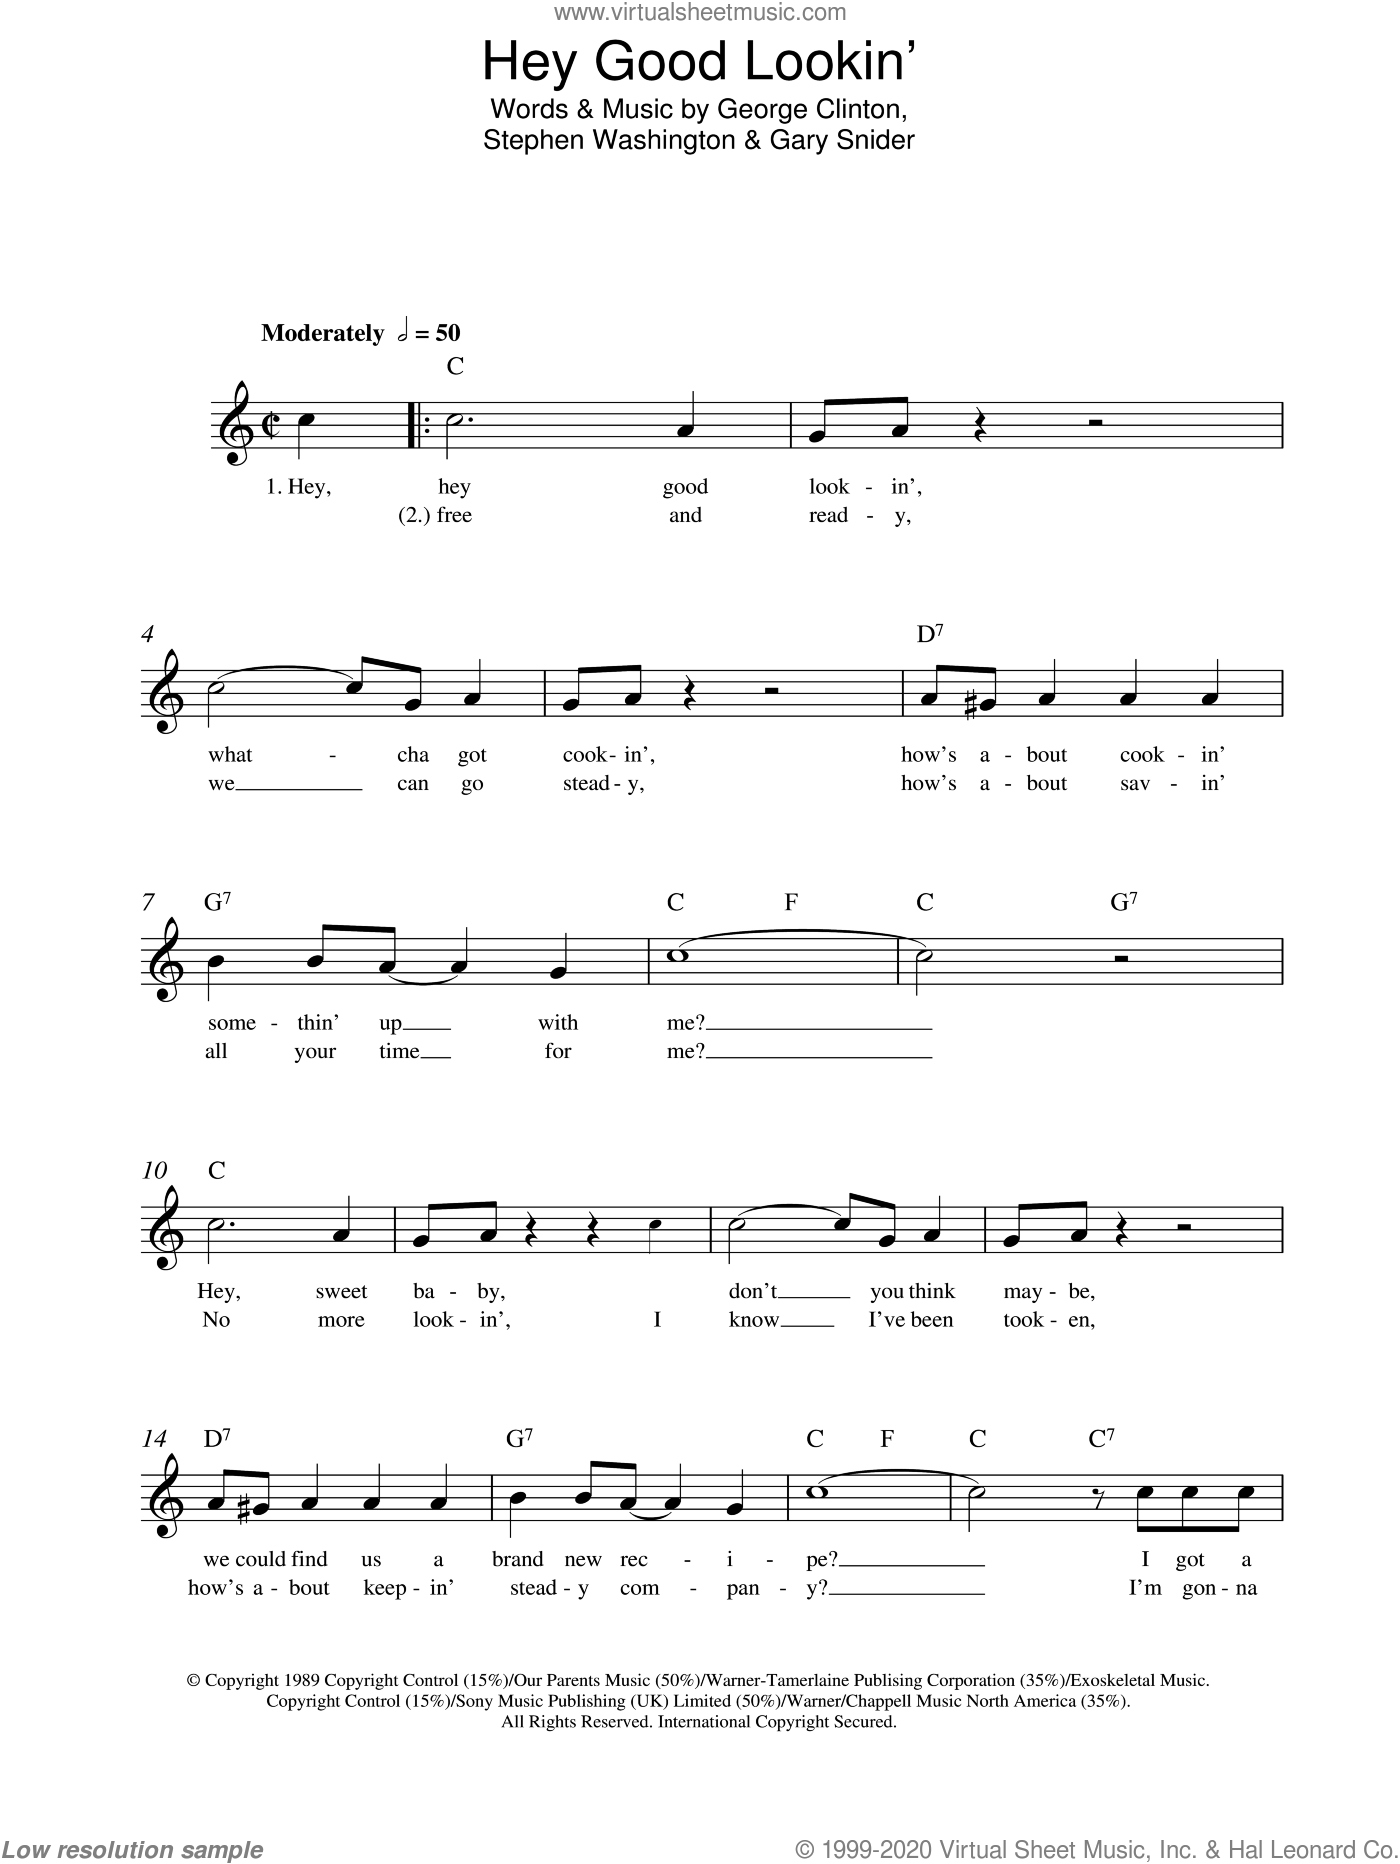 Hey, Good Lookin' sheet music for voice and other instruments (fake book) by Hank Williams, Gary Snider, George Clinton and Stephen Washington, intermediate skill level